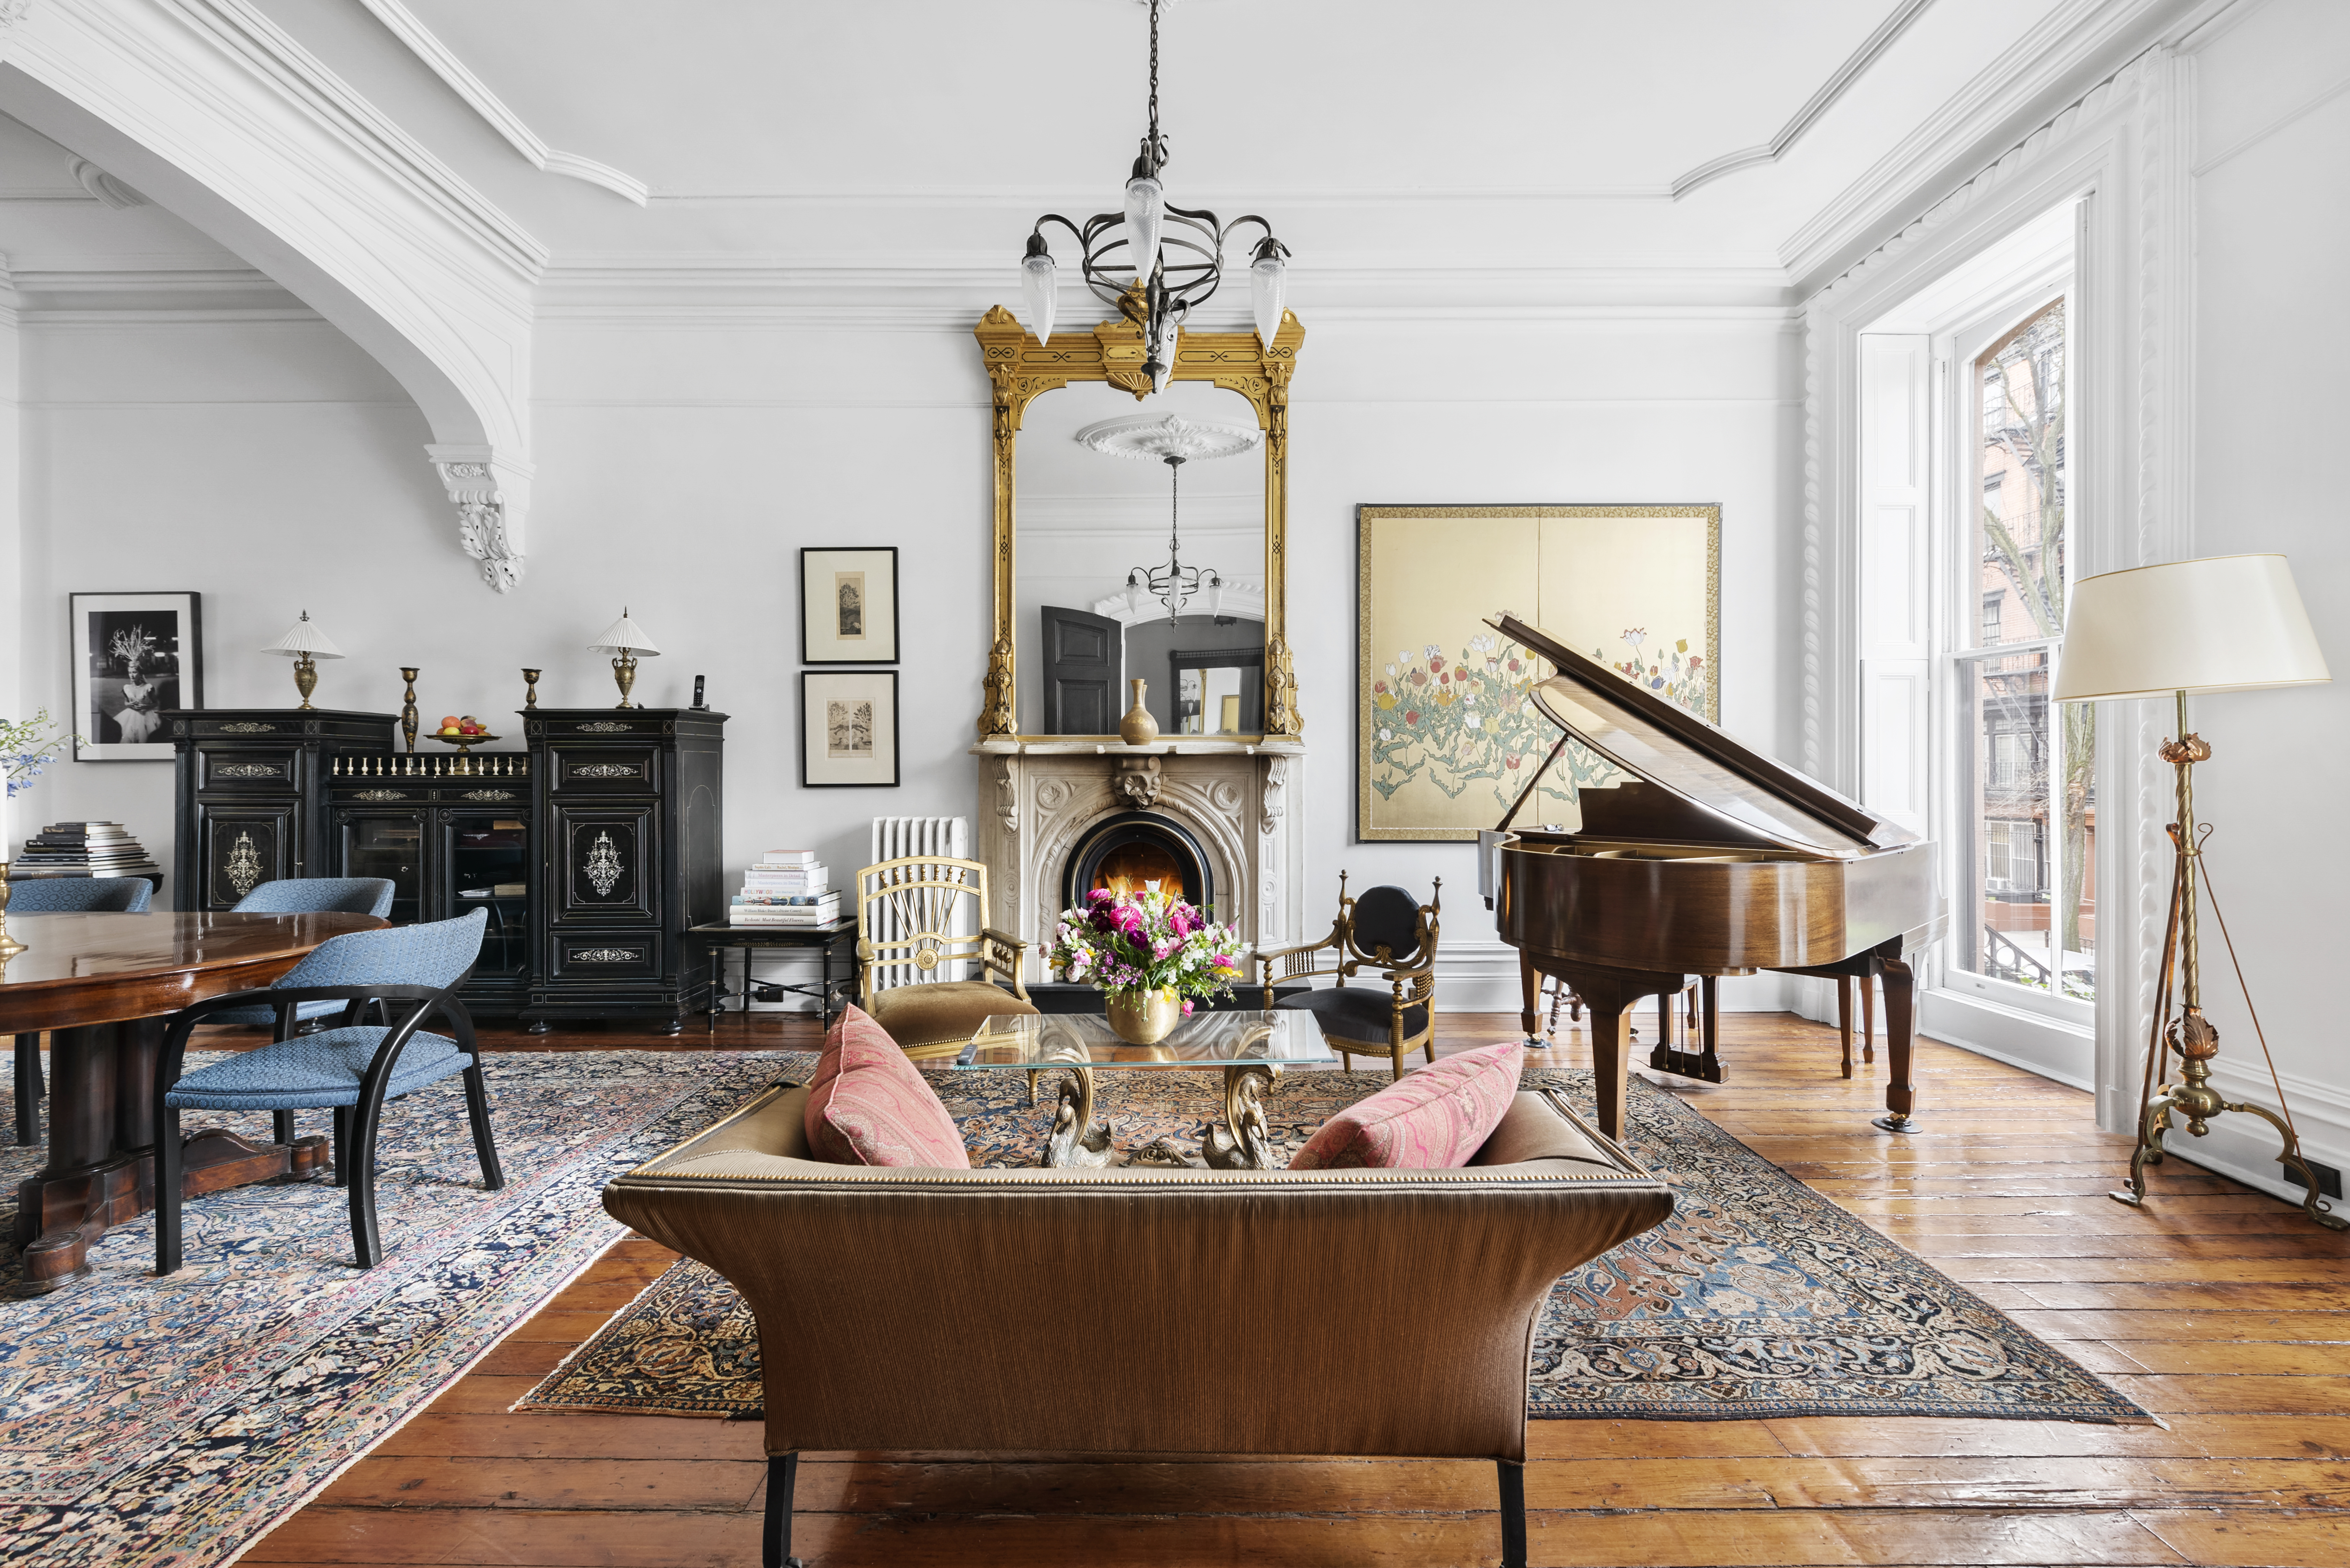 A living area with crown moldings, a wood-burning fireplace, a piano, and hardwood floors.